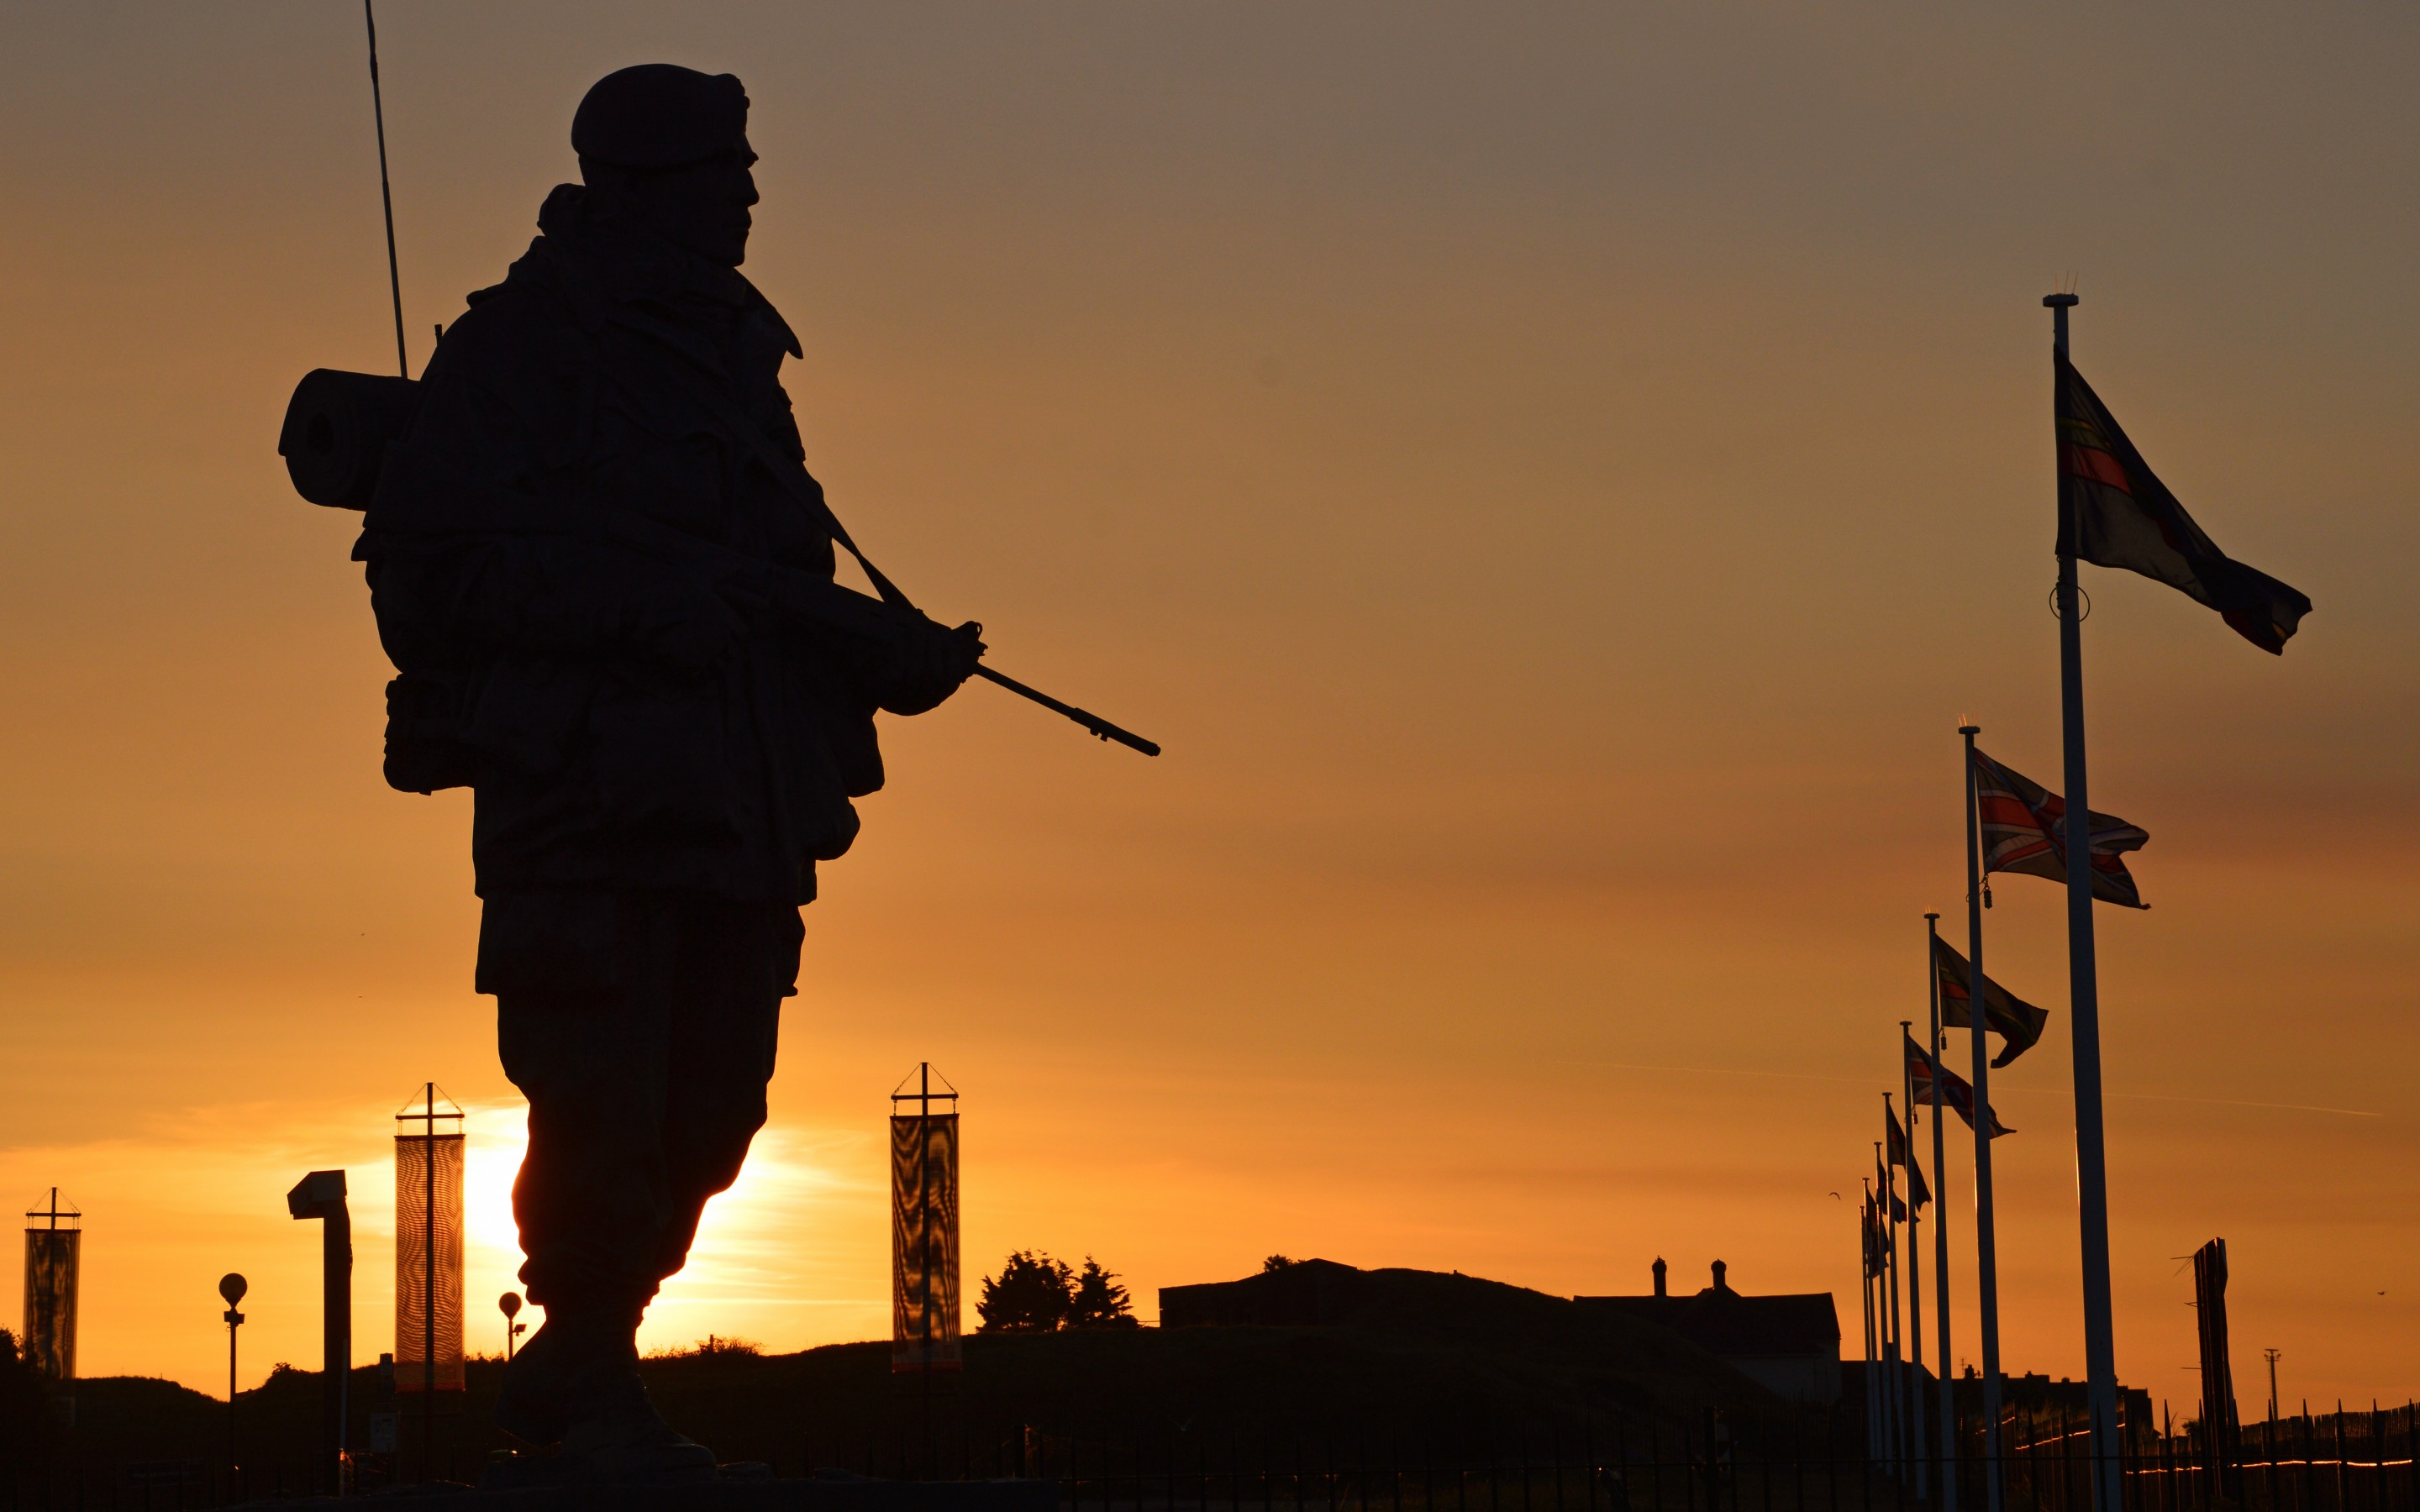 Sun Sunset Silhouette Commandos Soldiers Weapons Equipment Royal